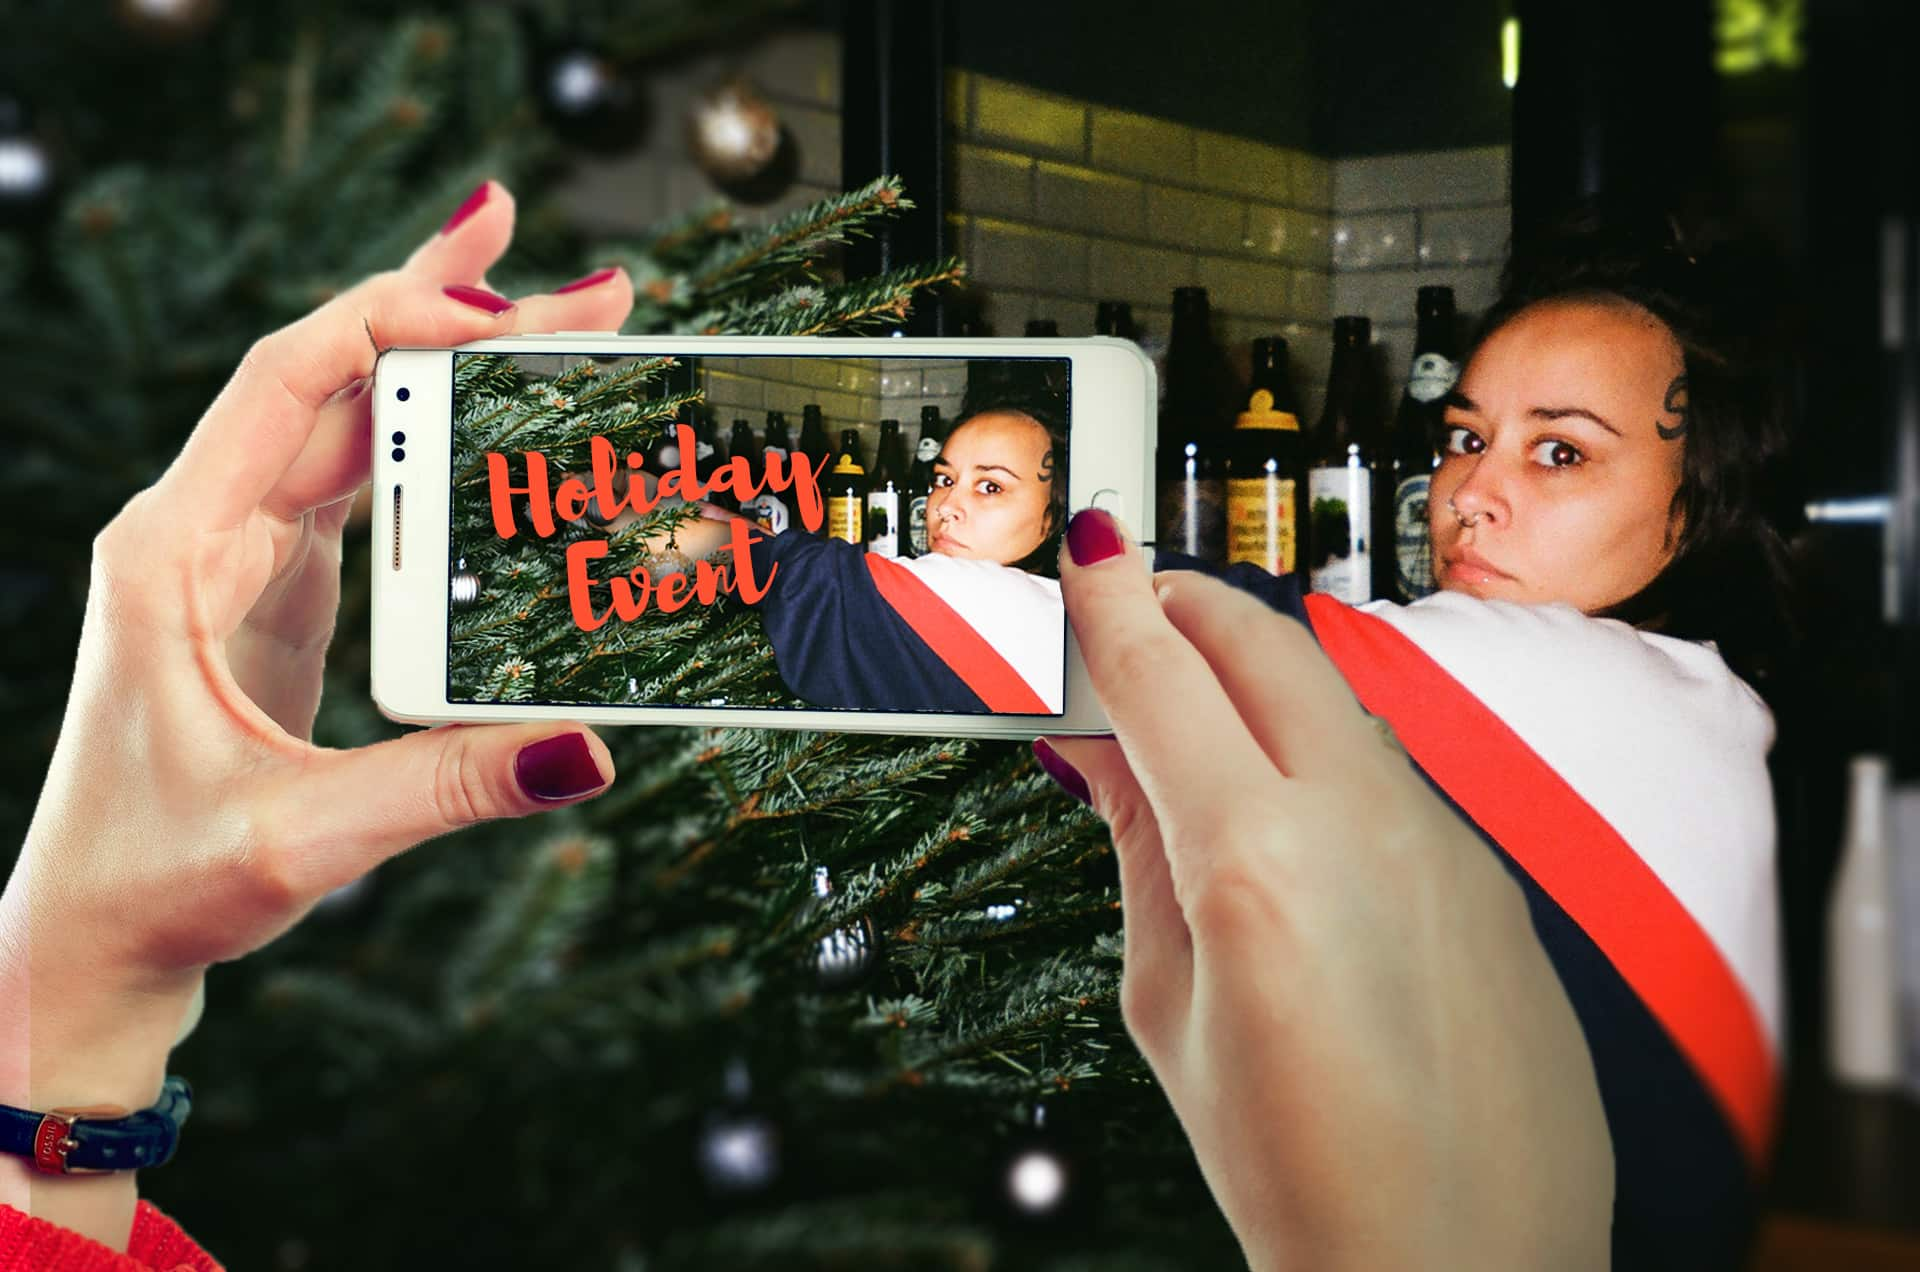 using social media to promote holiday events